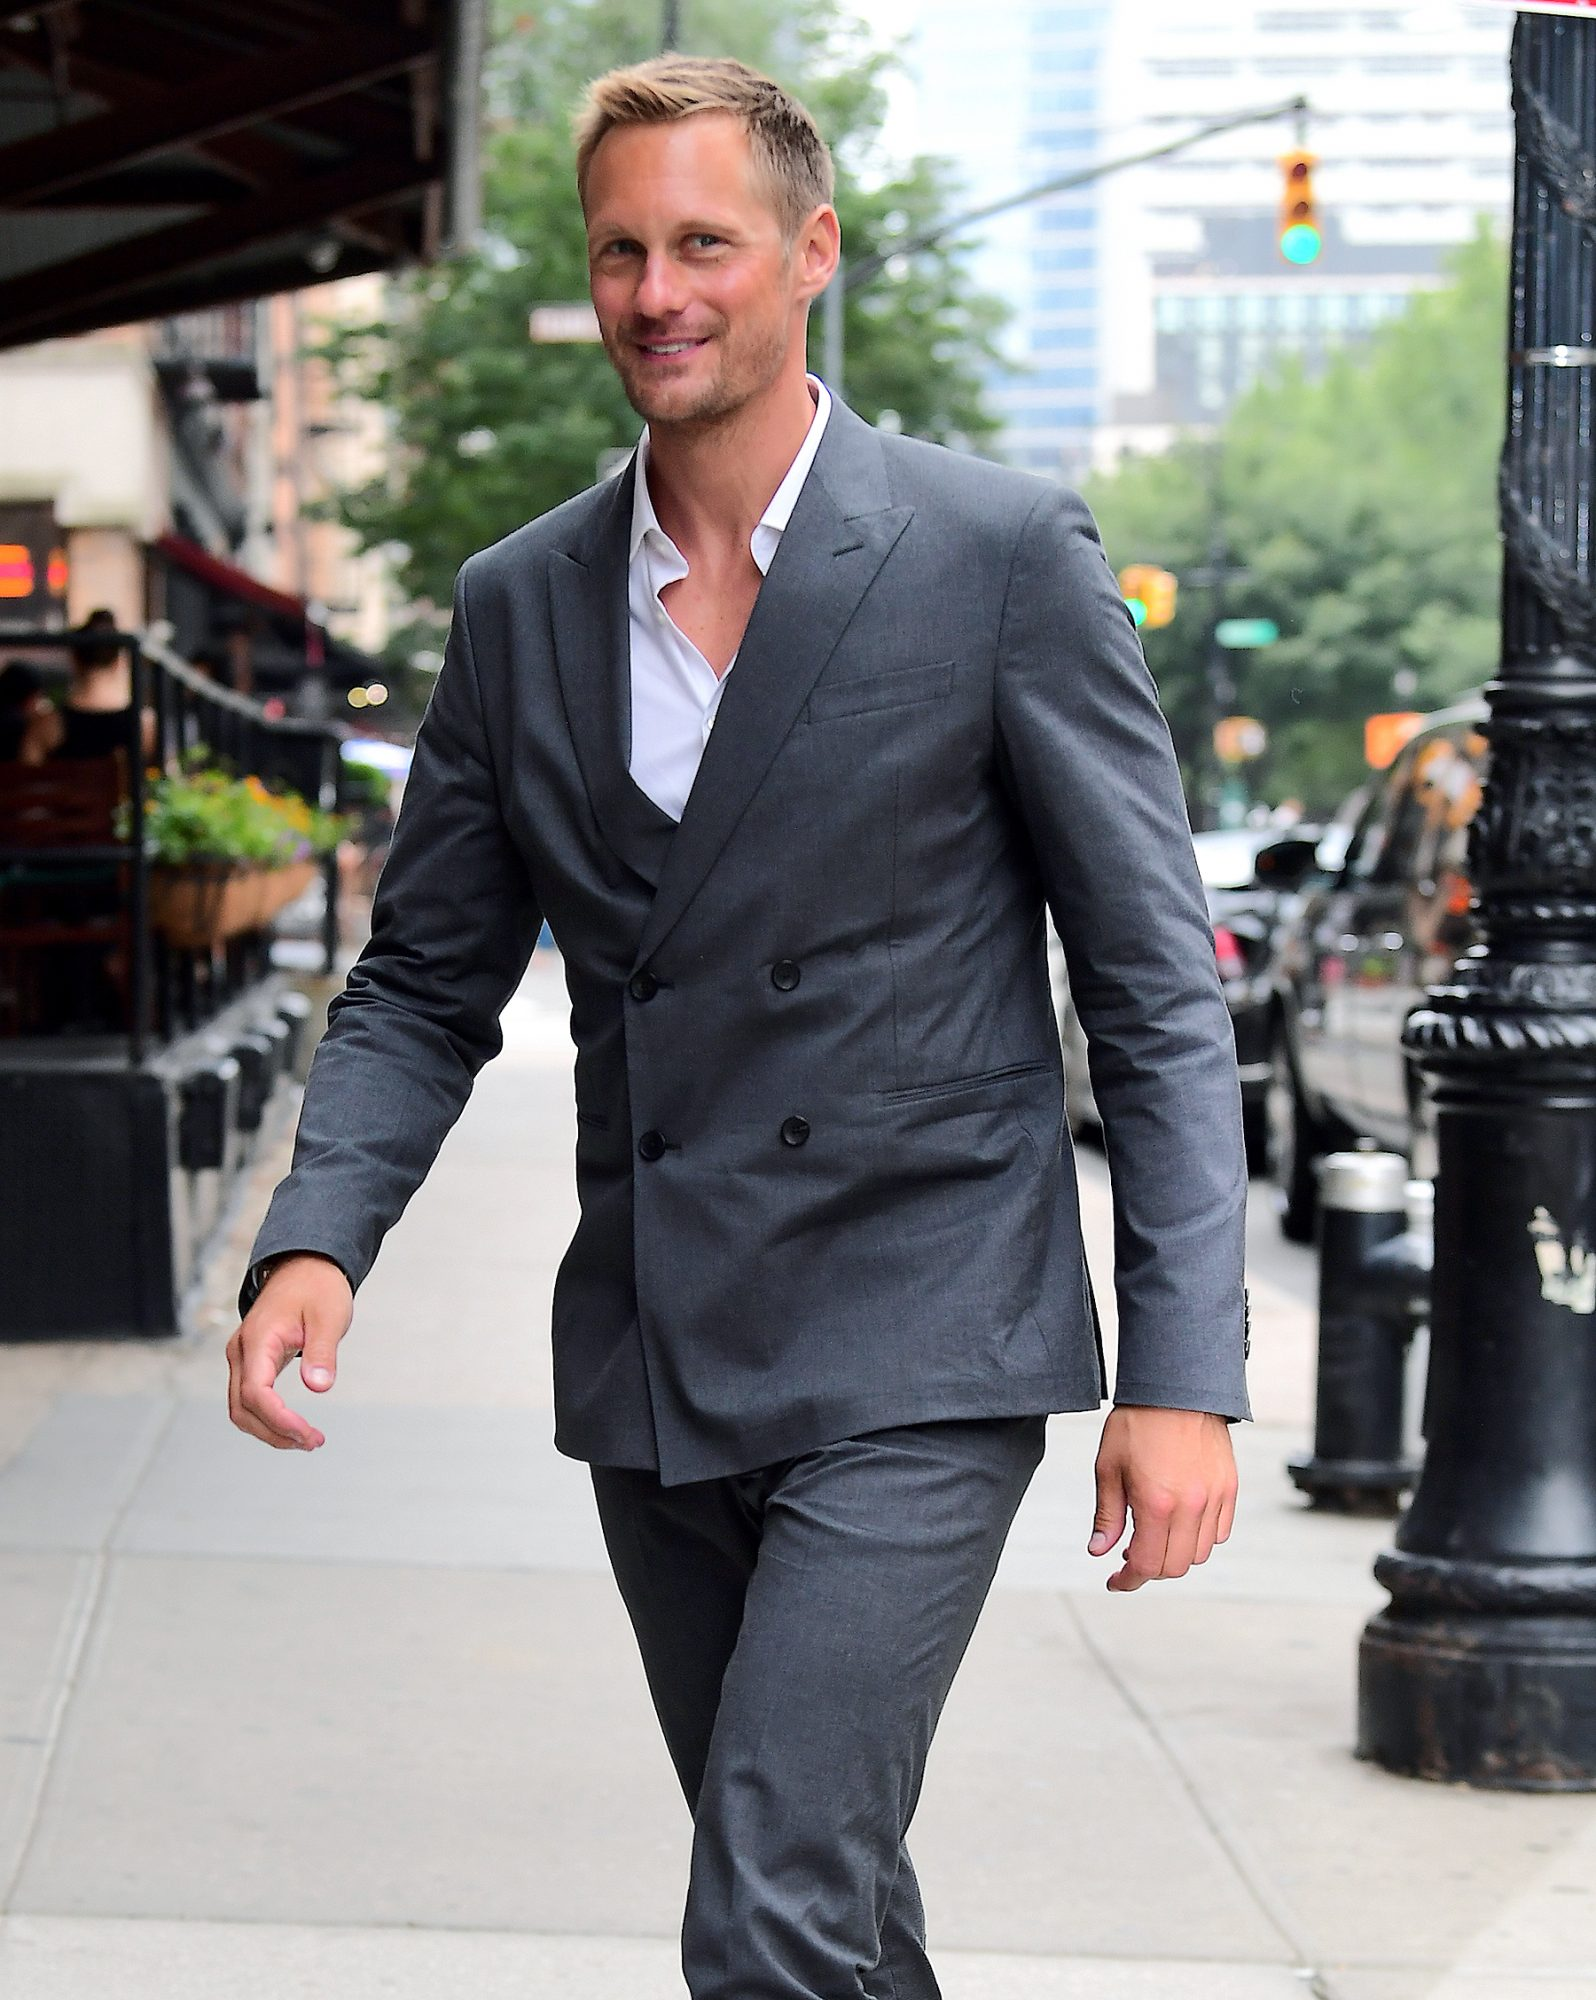 Alexander Skarsgard Looks Dapper in Grey Suit after Attending Mens Fashion Week in NYC